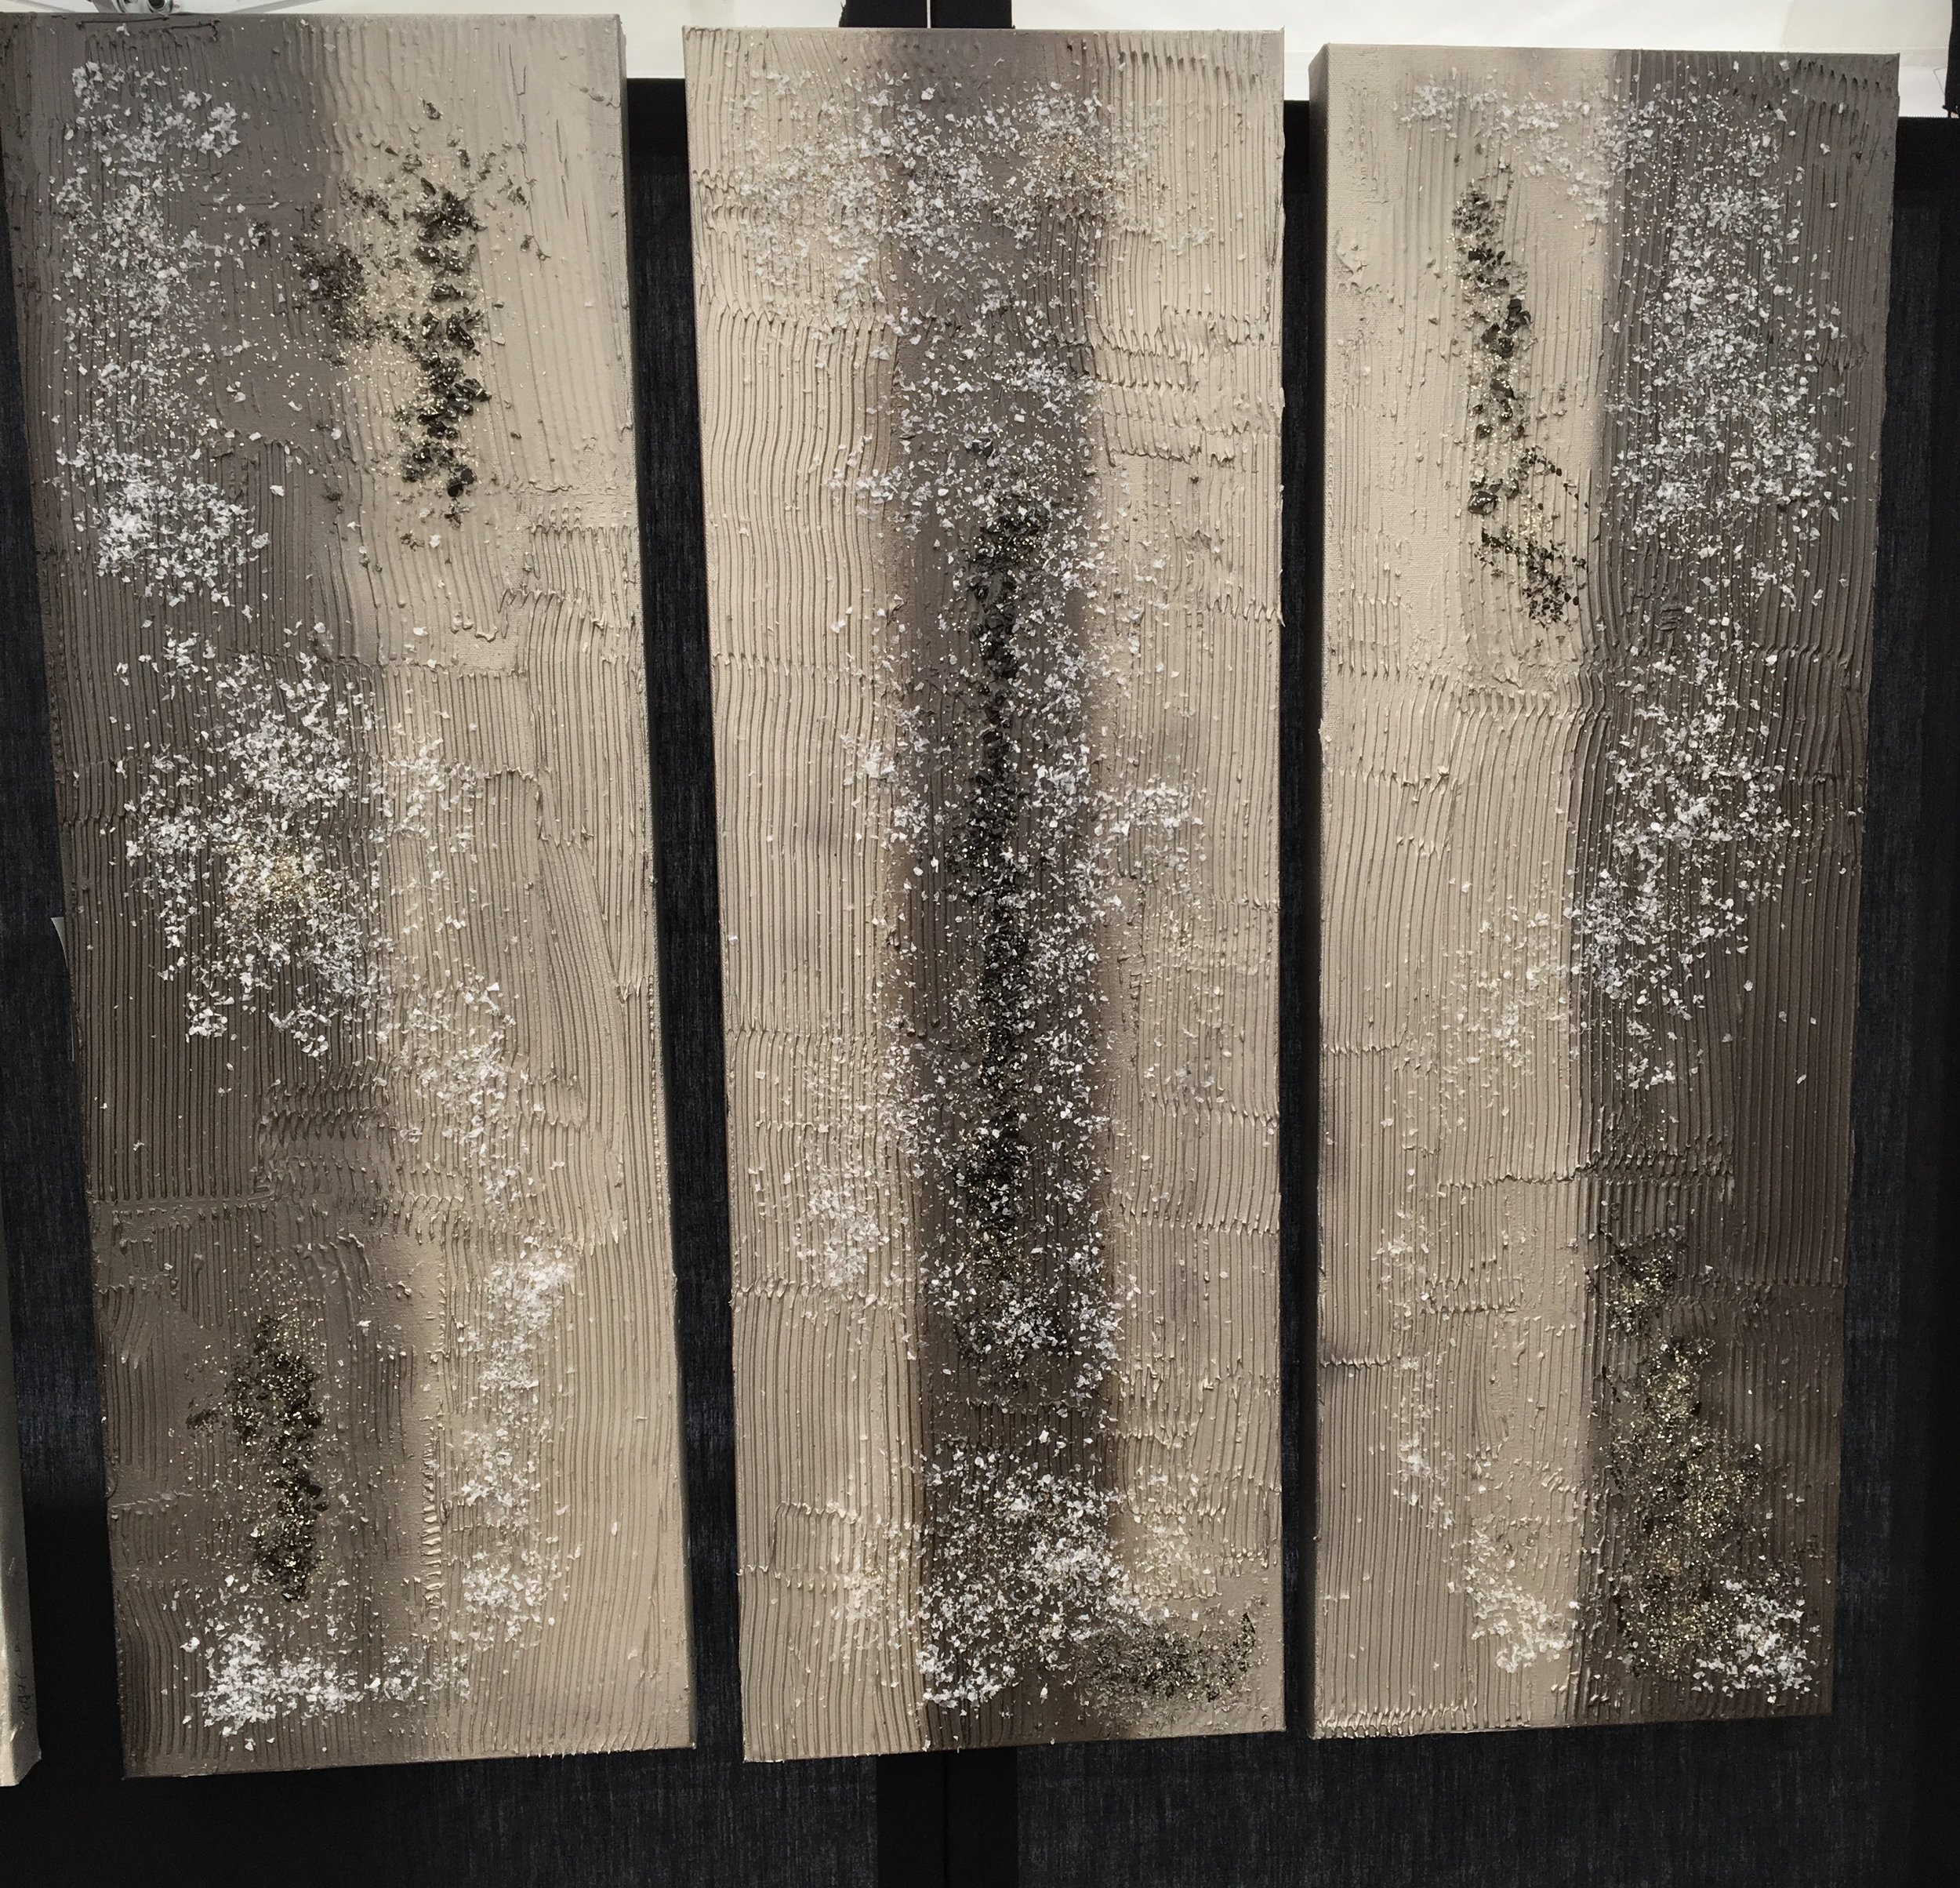 'Pilars' are three 16x40 panels that obviously make a statement. the white crystals that you see are lighter and have an airy feel against the silver and grey tones with black accents.